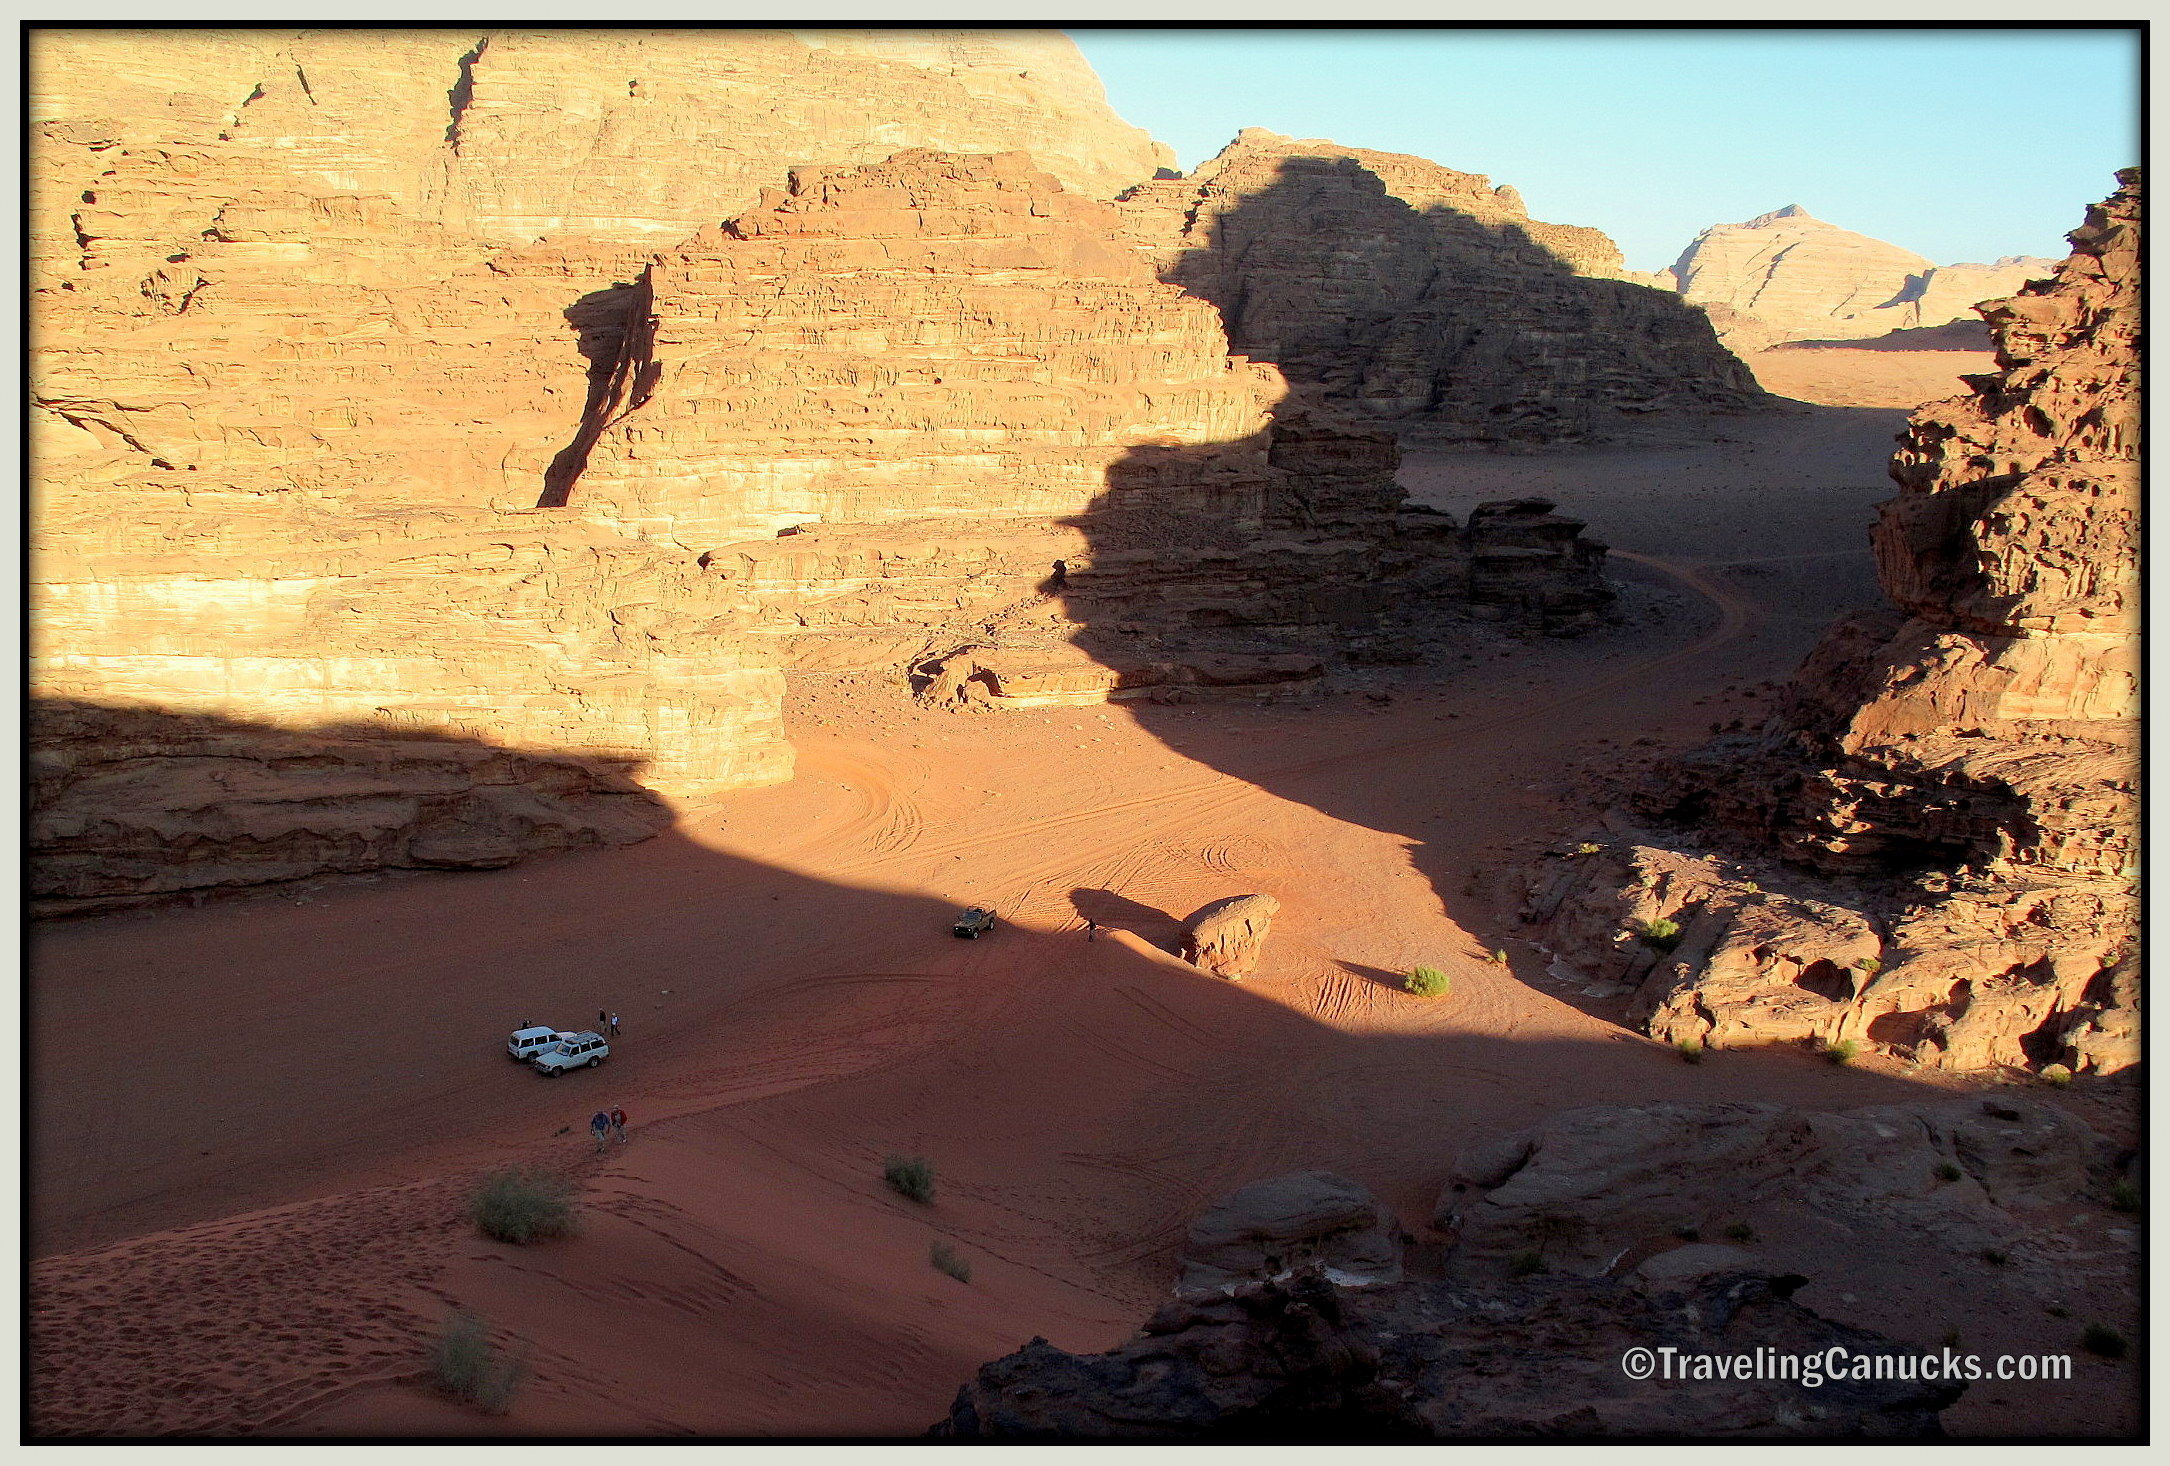 Photo of the Week: The Valley of the Moon, Jordan